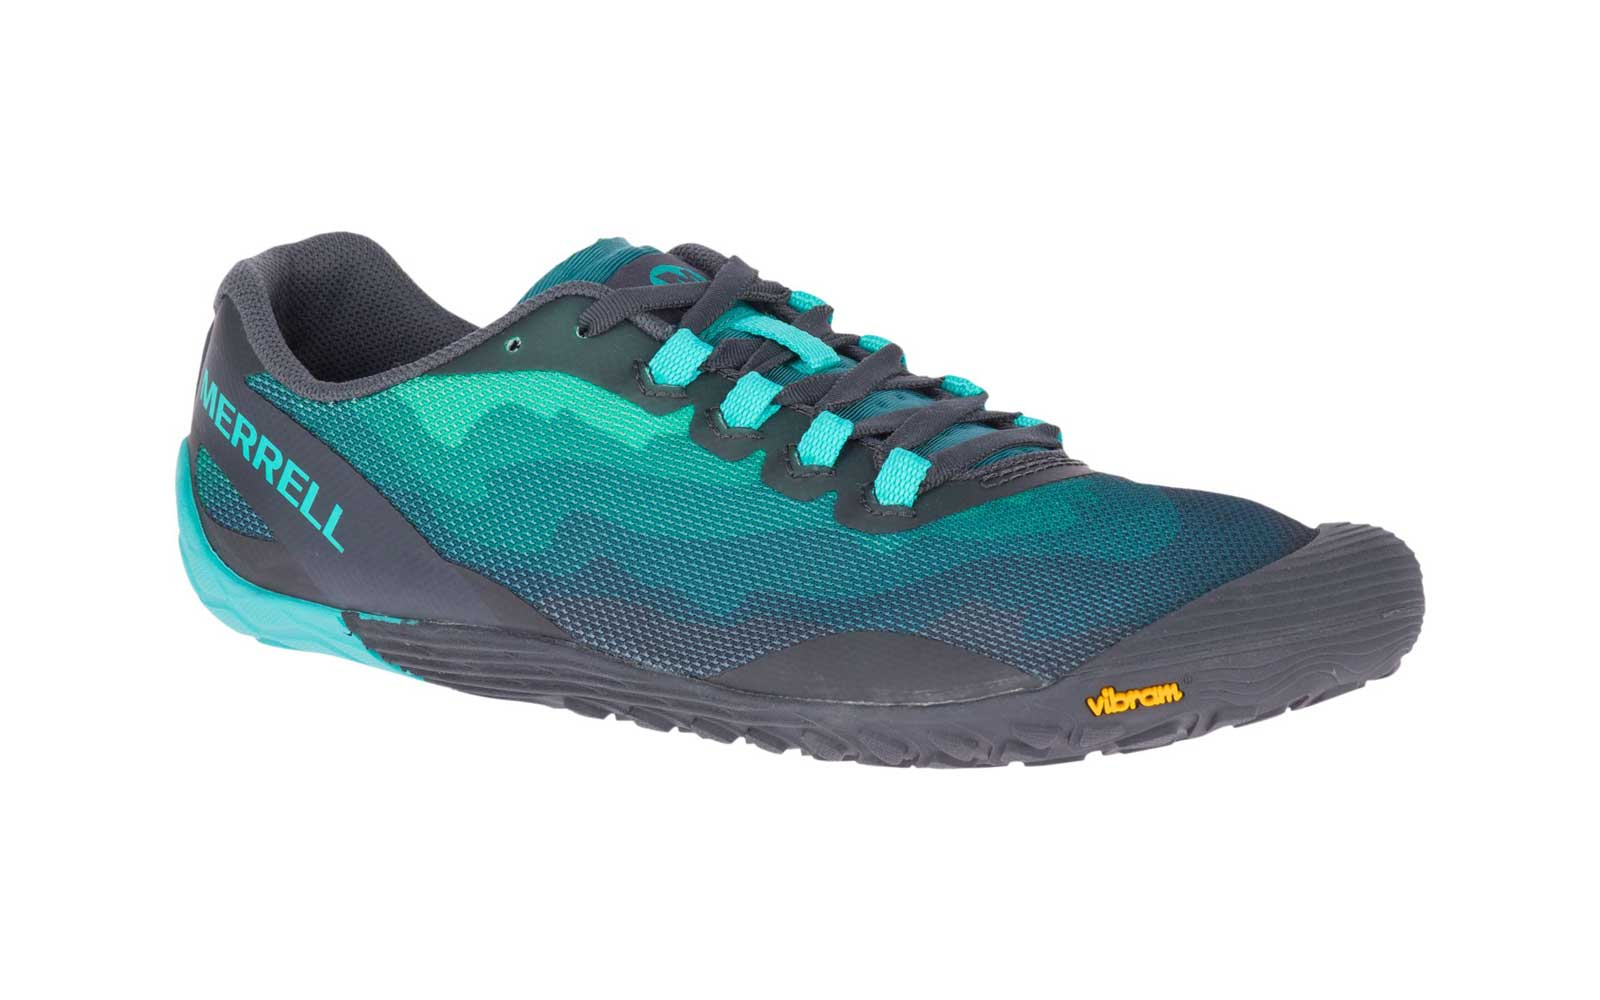 18c080dd3f The 20 Best Hiking Shoes and Boots for Women in 2019 | Travel + Leisure